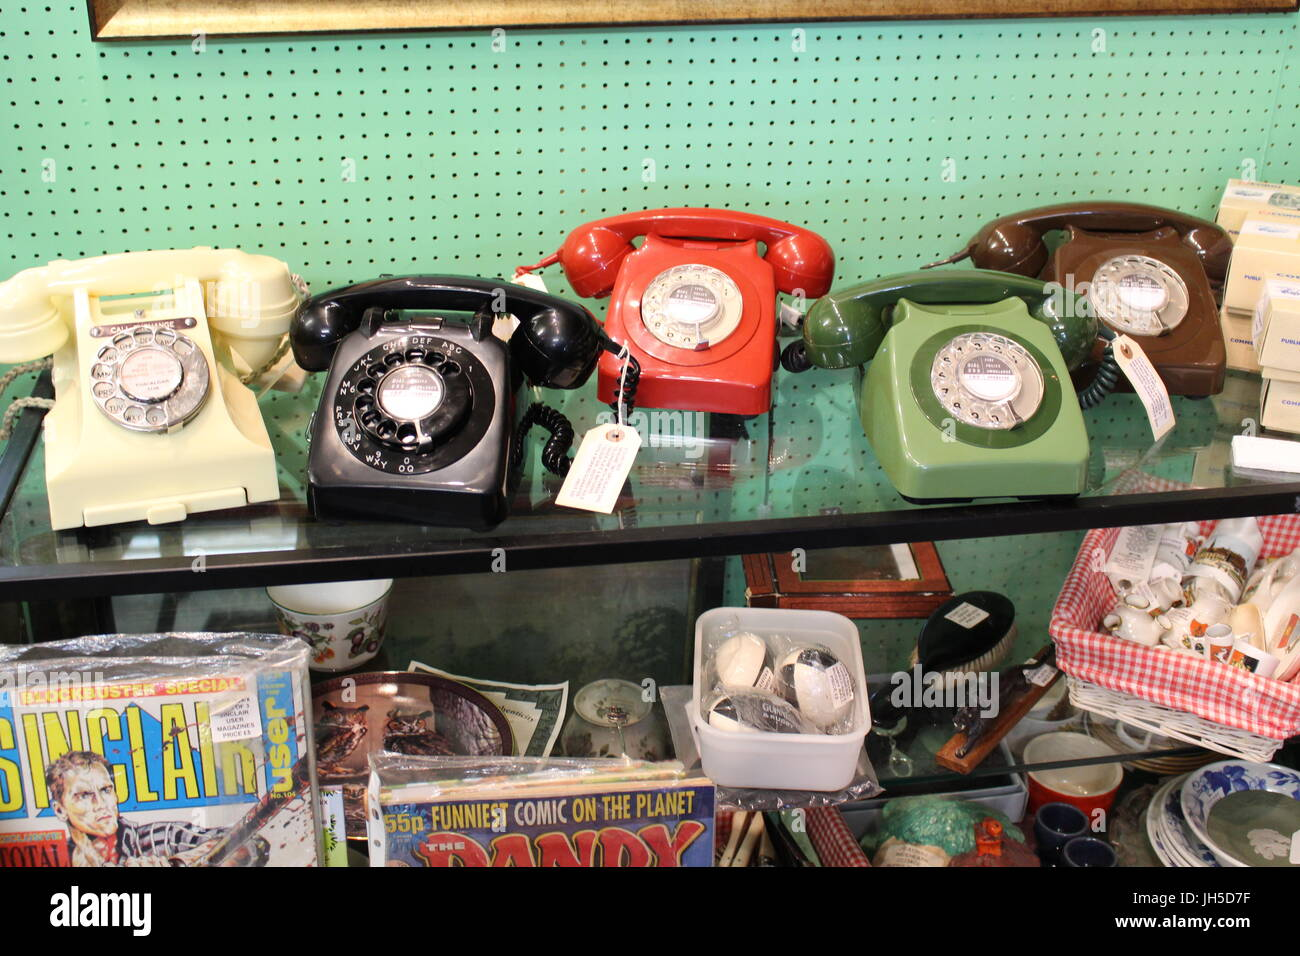 old phones, antique phones, phones on display, telephones, old fashioned phones, trendy interiors, trends, kitsch, - Stock Image